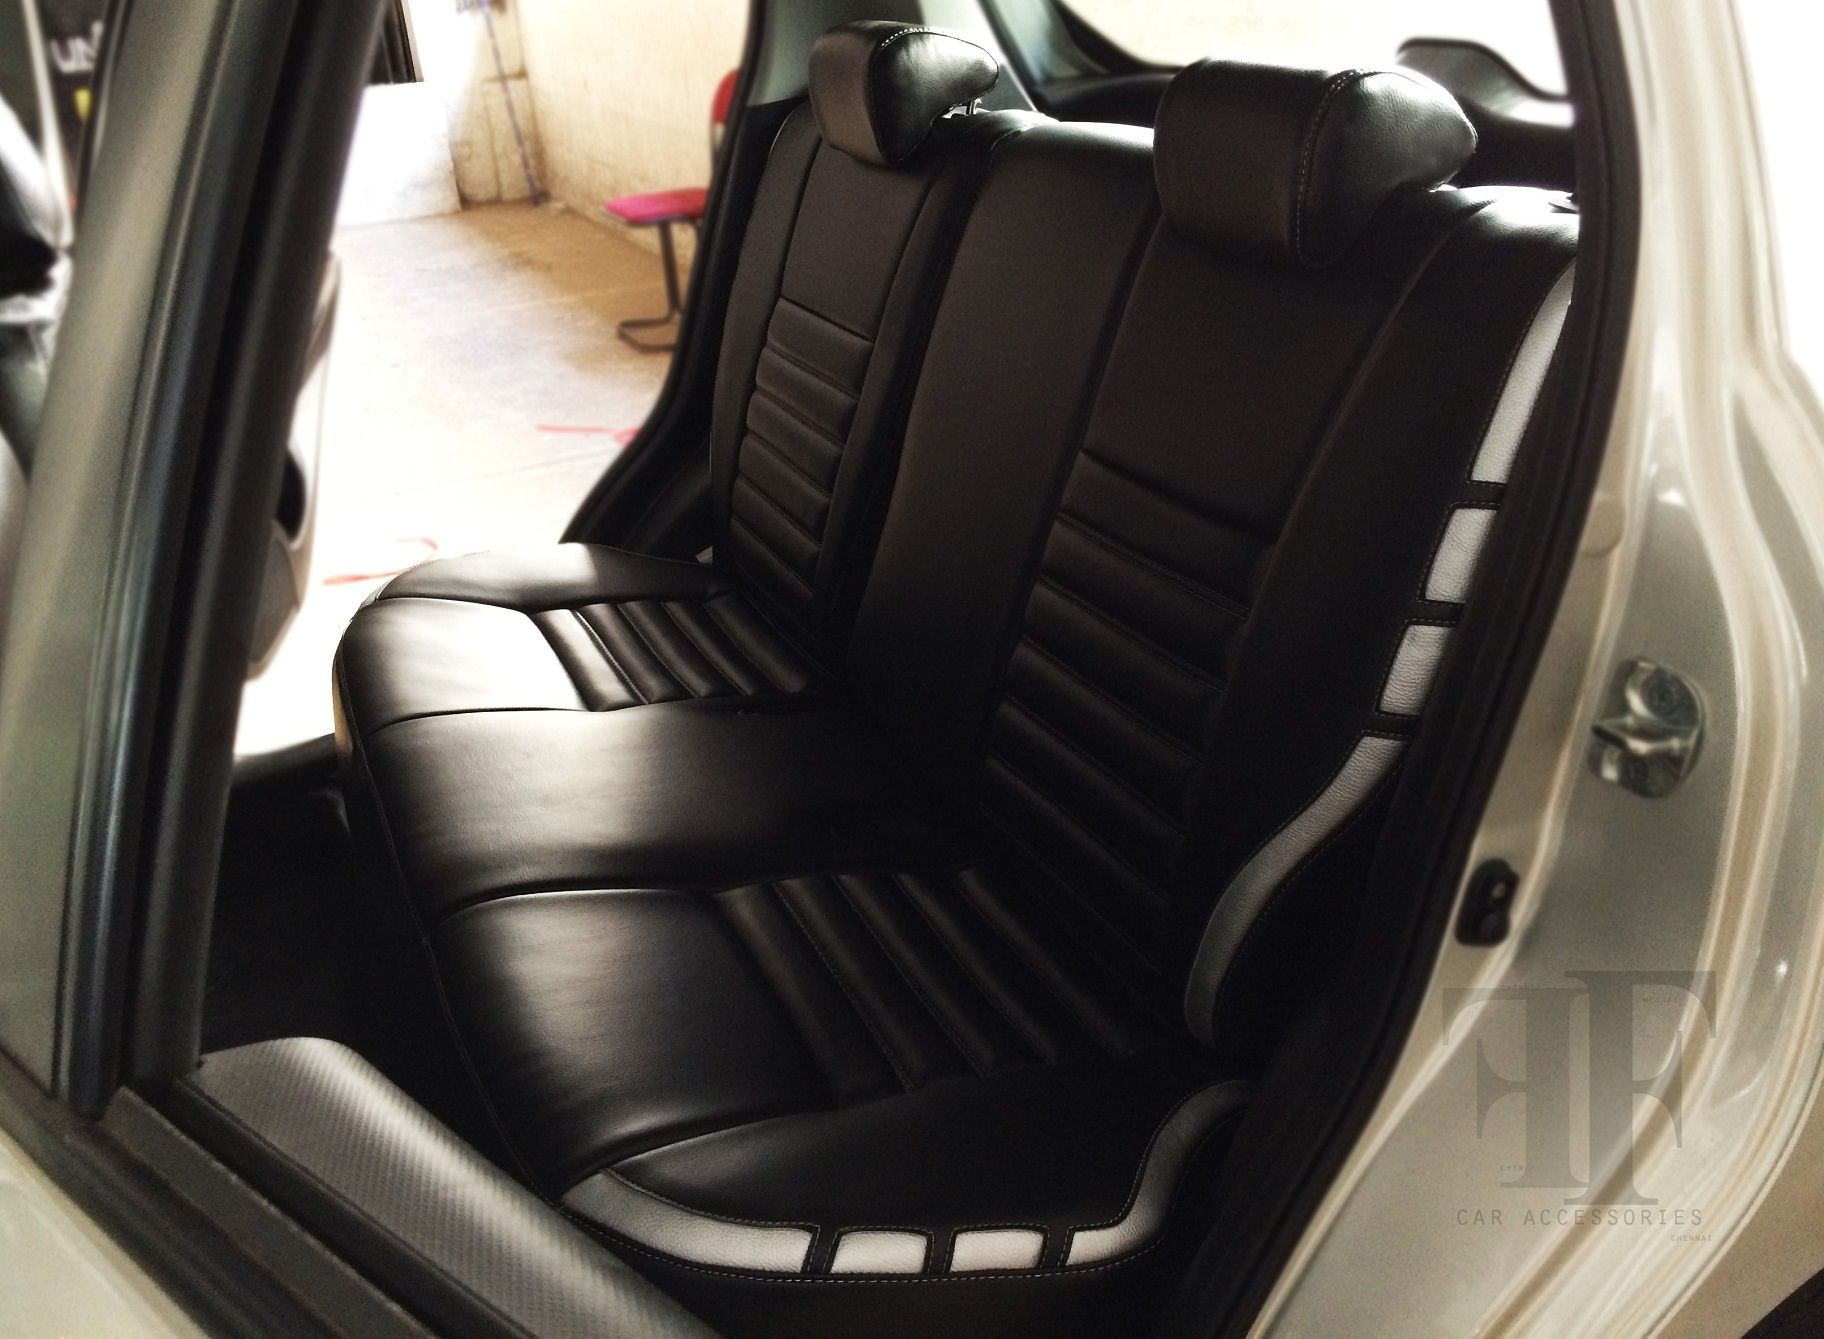 Rear Seats Of Maruti Swift After Installing The Car Seat